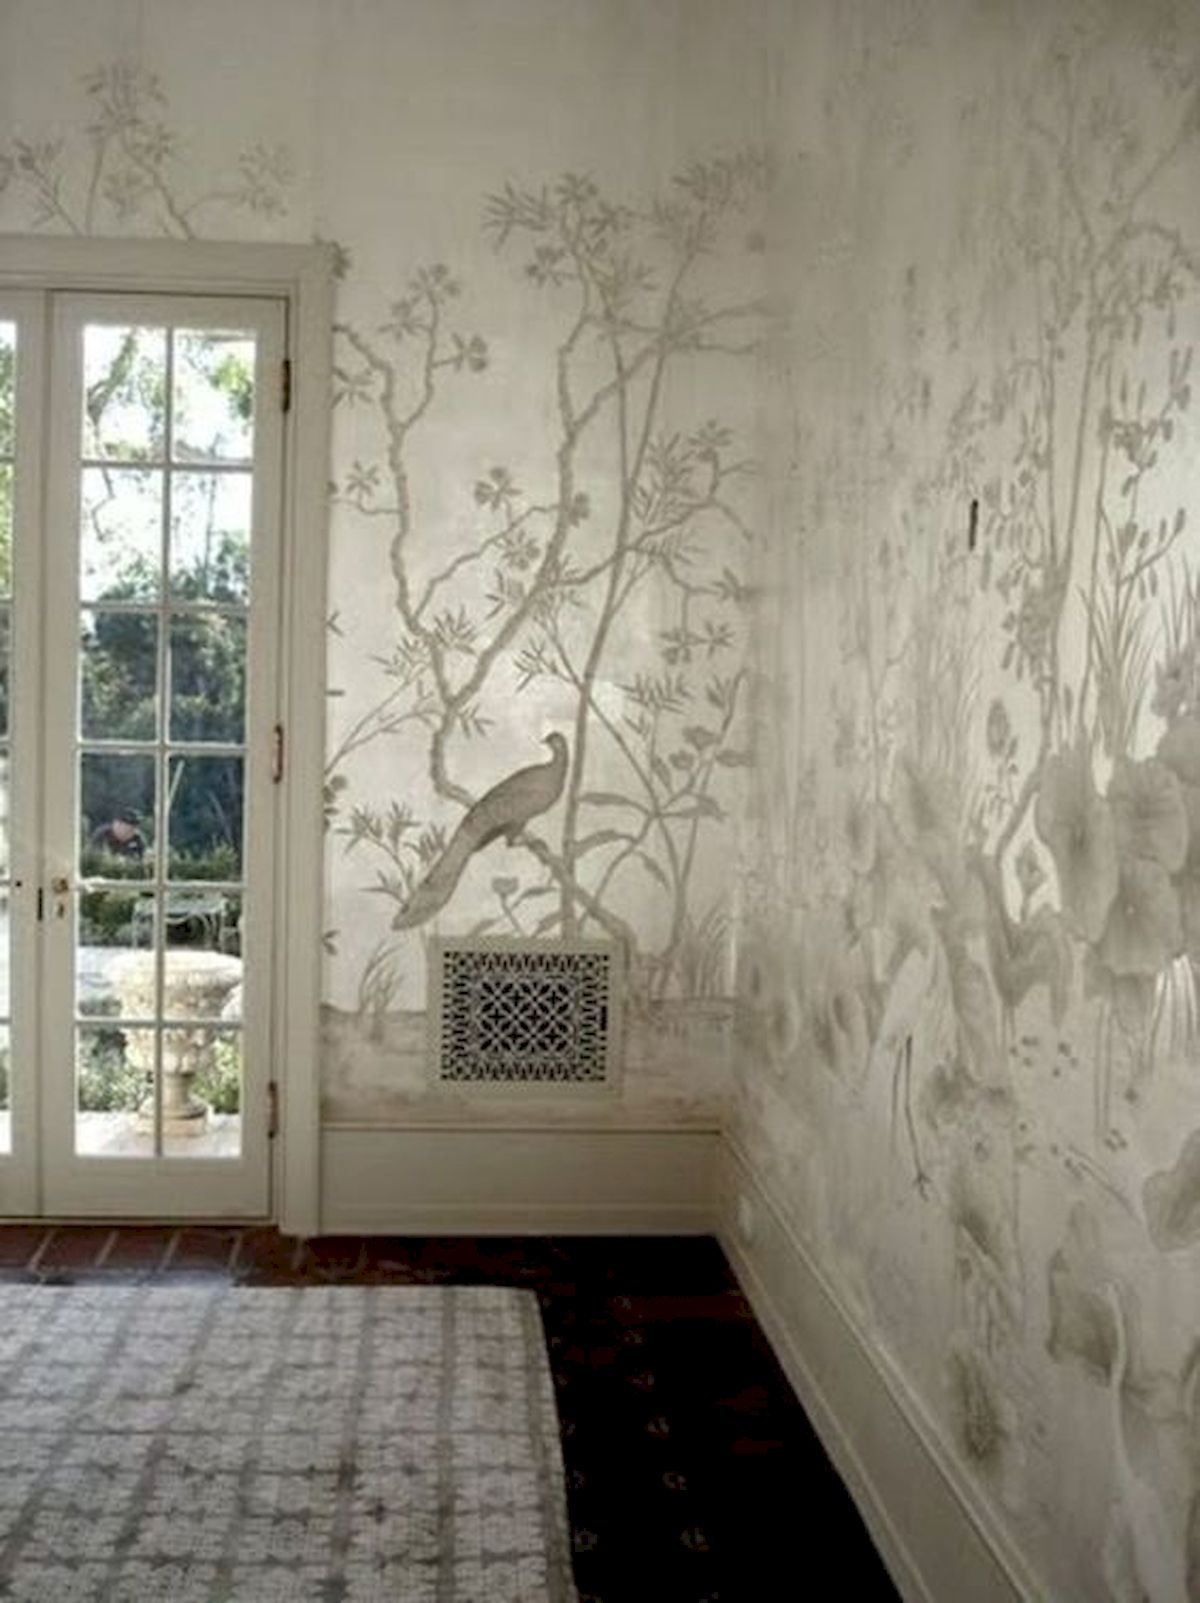 44 Easy but Awesome DIY Wall Painting Ideas to Decorate Your Home (14)